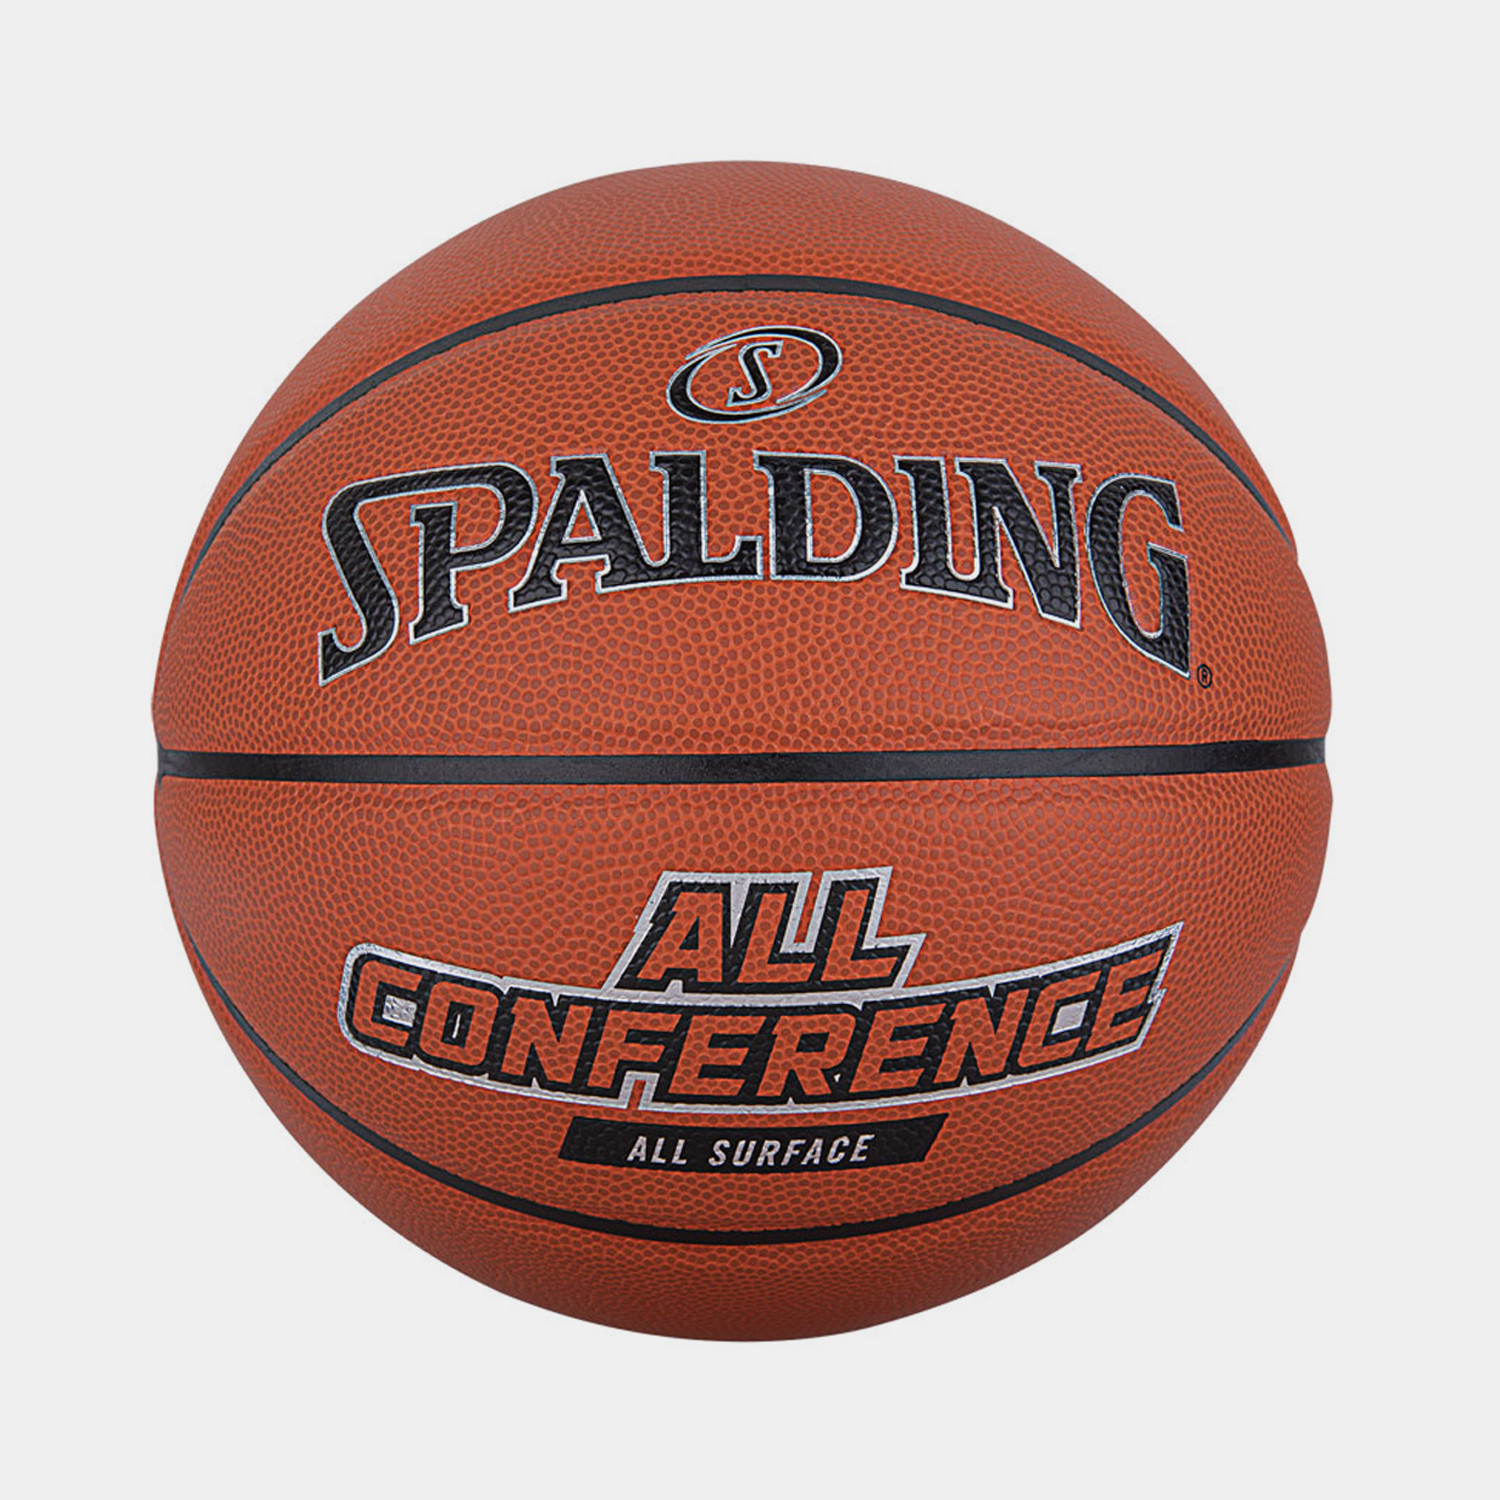 Spalding All Conference Sz7 Composite Basketball (9000079610_3236)